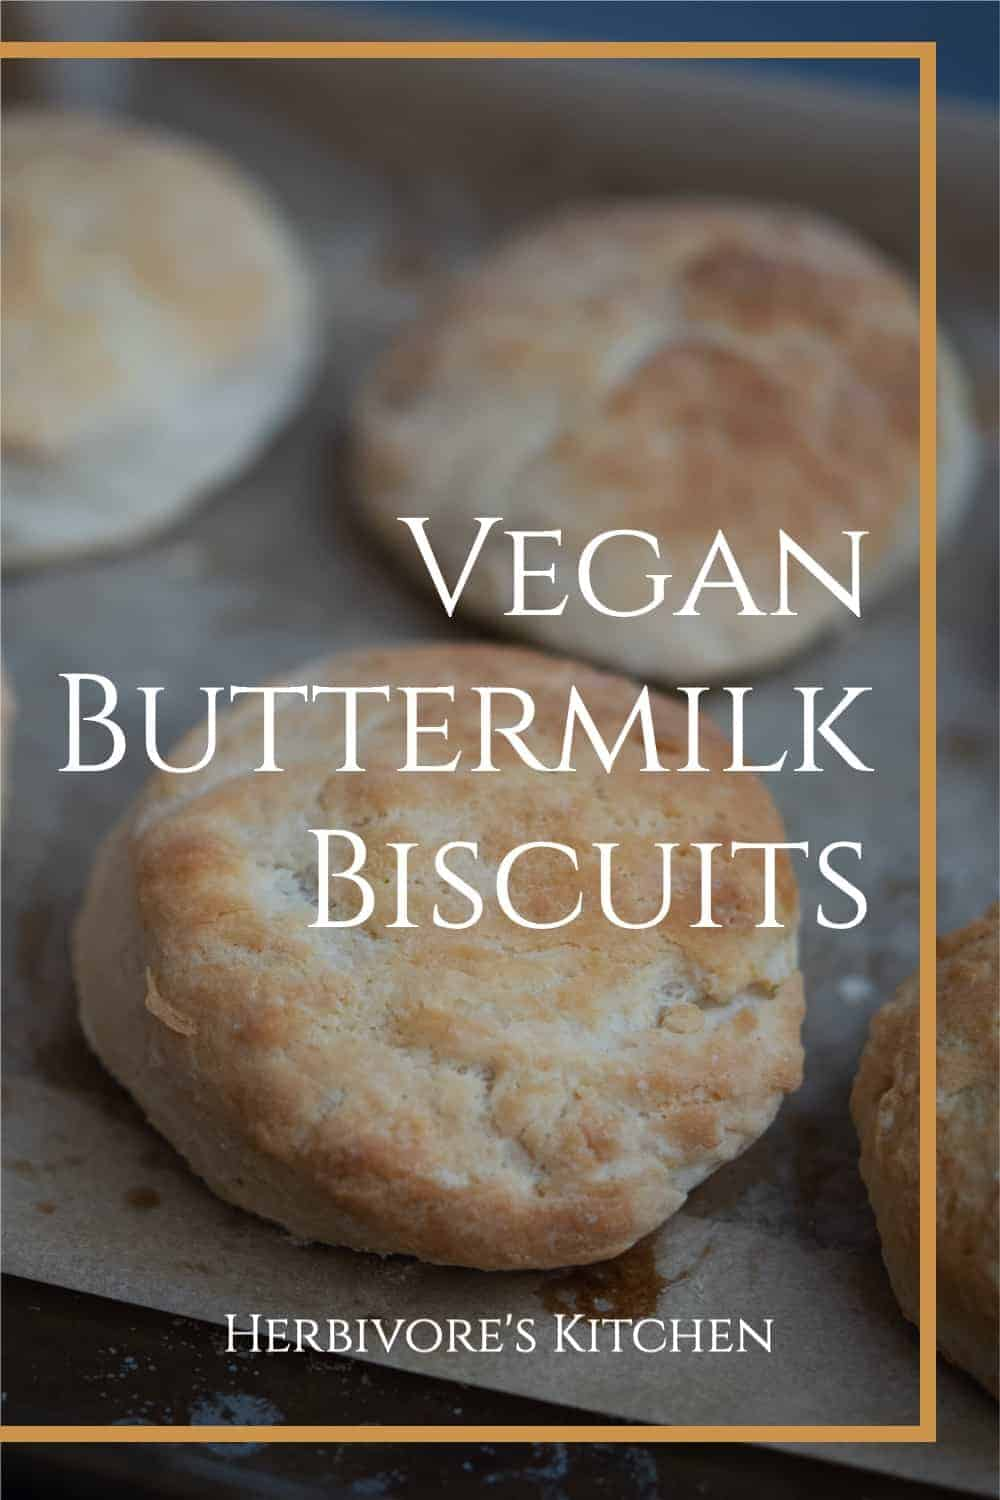 Dairy Free Biscuits: Breakfast Is Made Better with These Vegan Buttermilk Biscuits